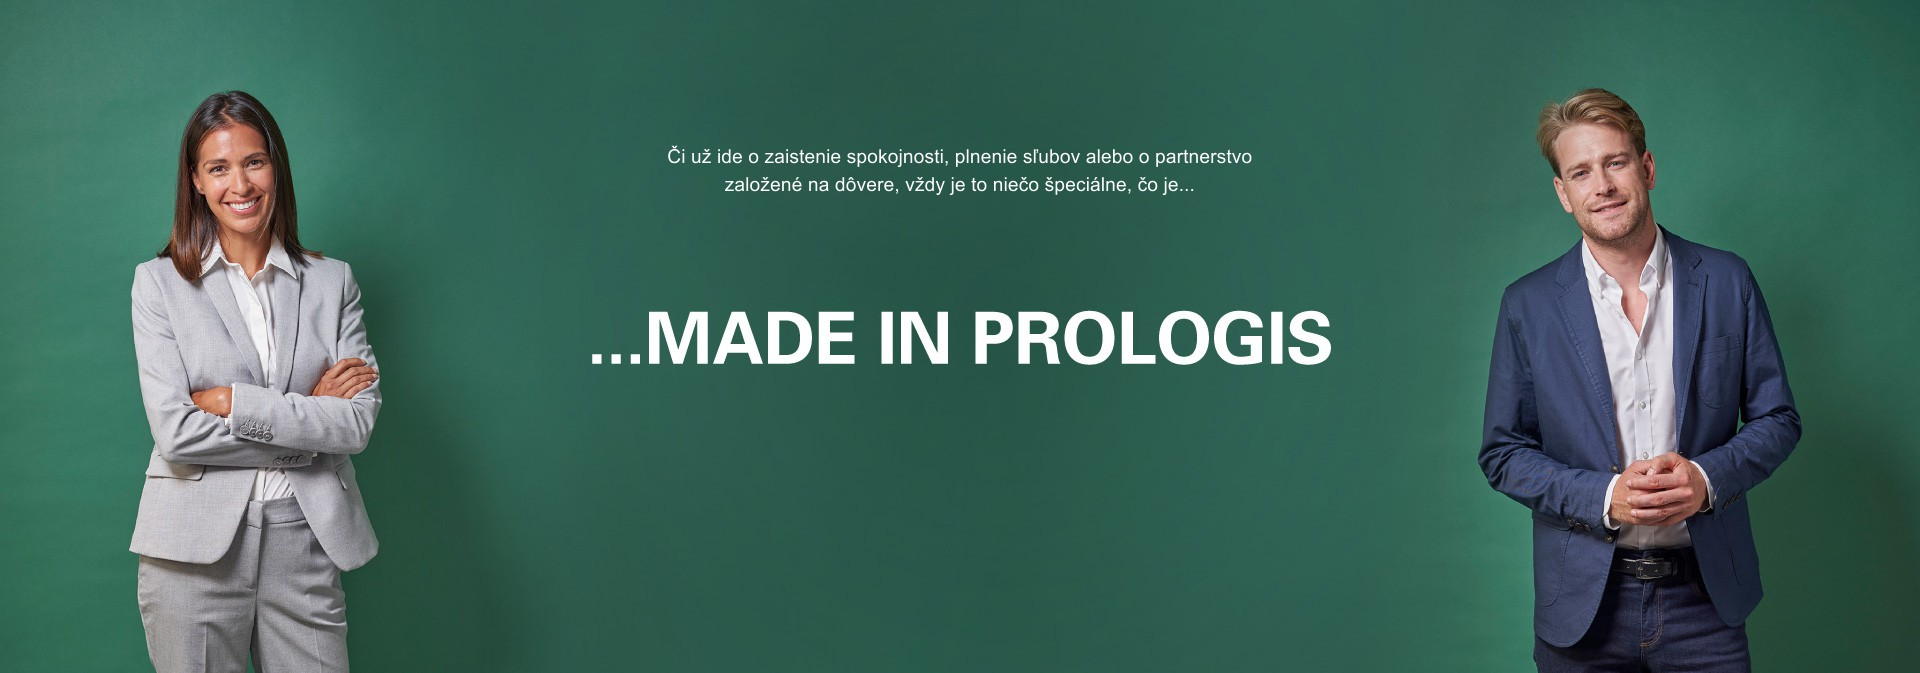 MADE IN PROLOGIS